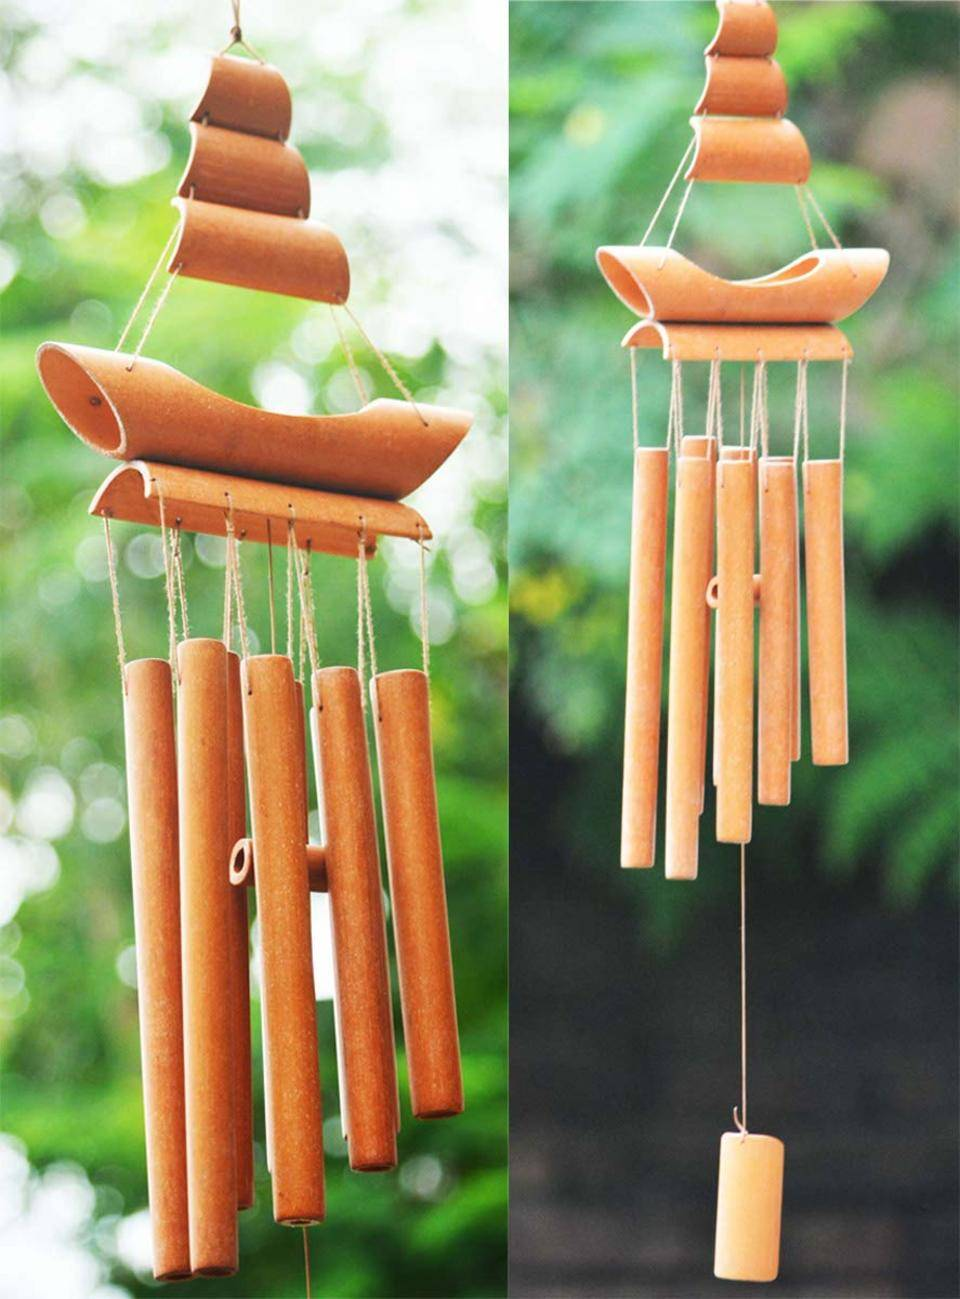 Wind Chimes - the music to ears | Business Insider India